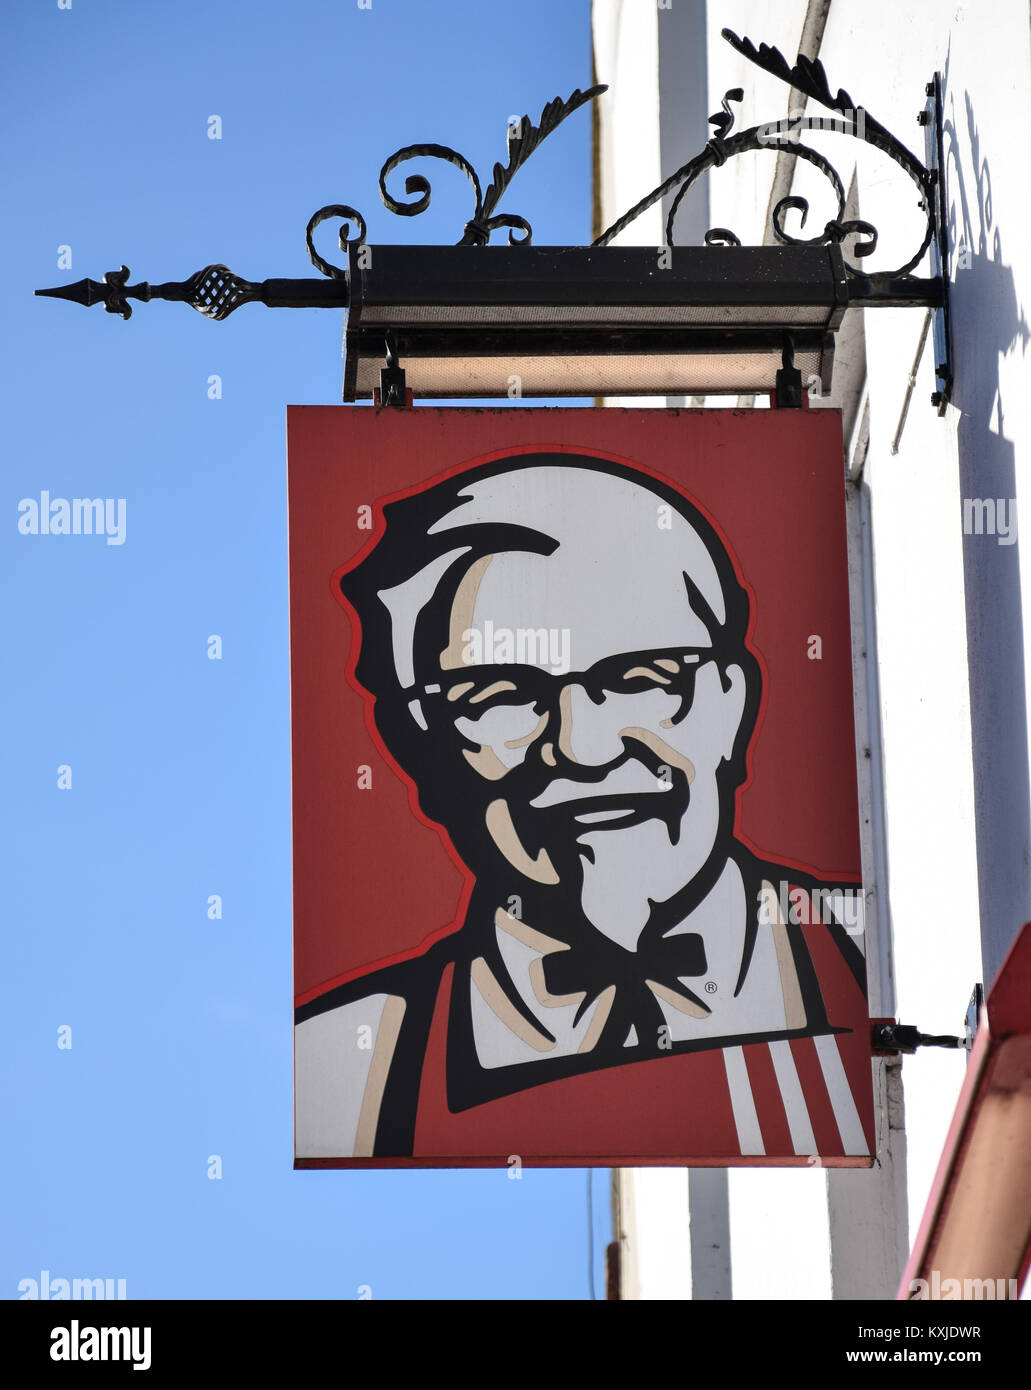 Banbury, England - November 29 2017:   A Hanging Sign for a KFC restaurant in Market Place, Banbury - Stock Image